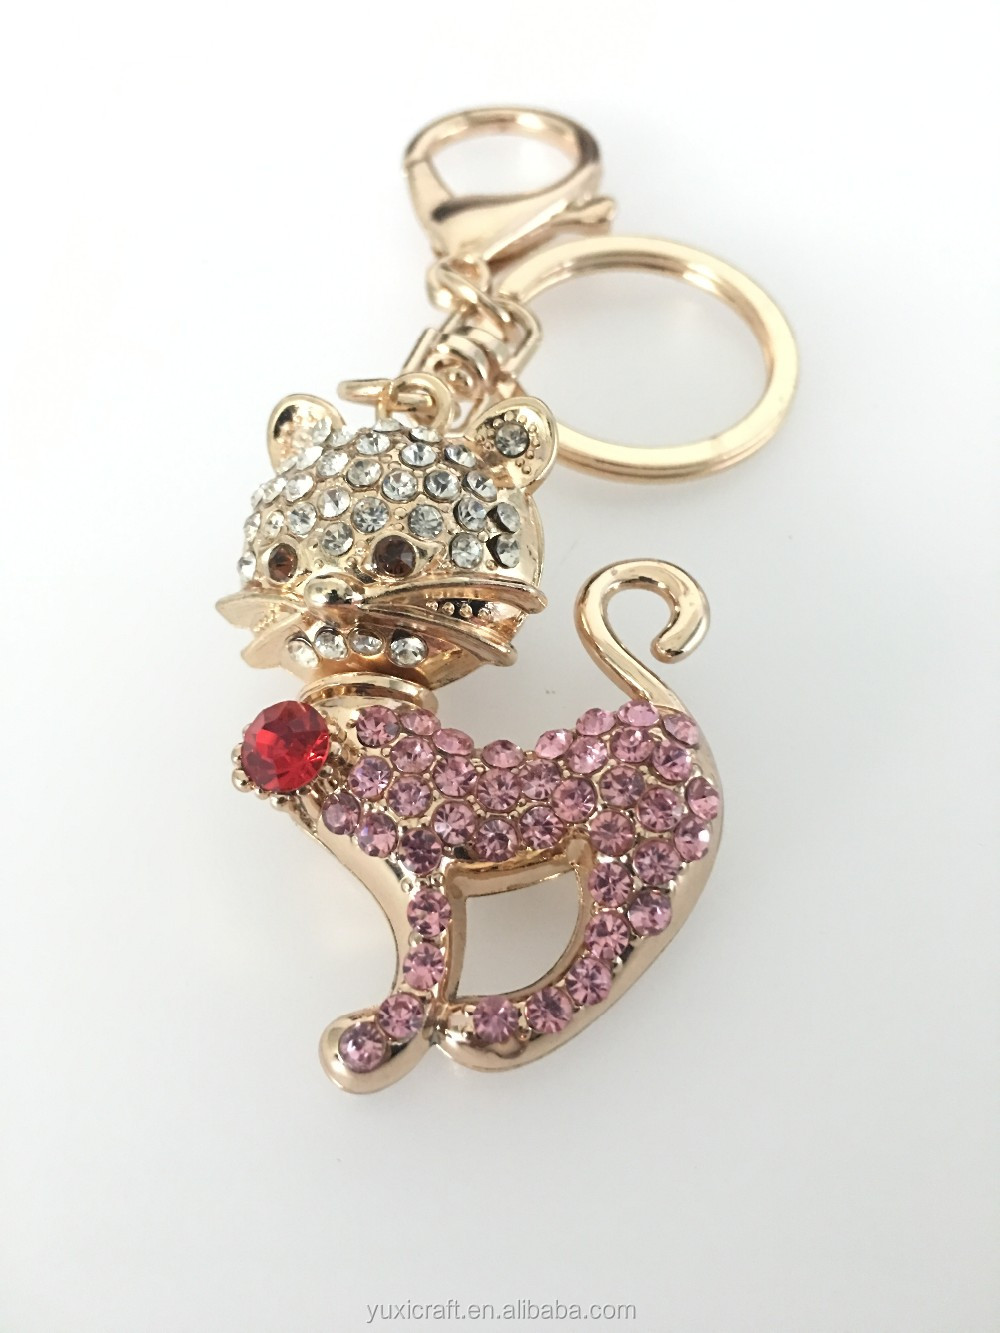 Custom crystal metal rhinestone animal lovely kitty key ring chain suppliers for bag,car, crafts